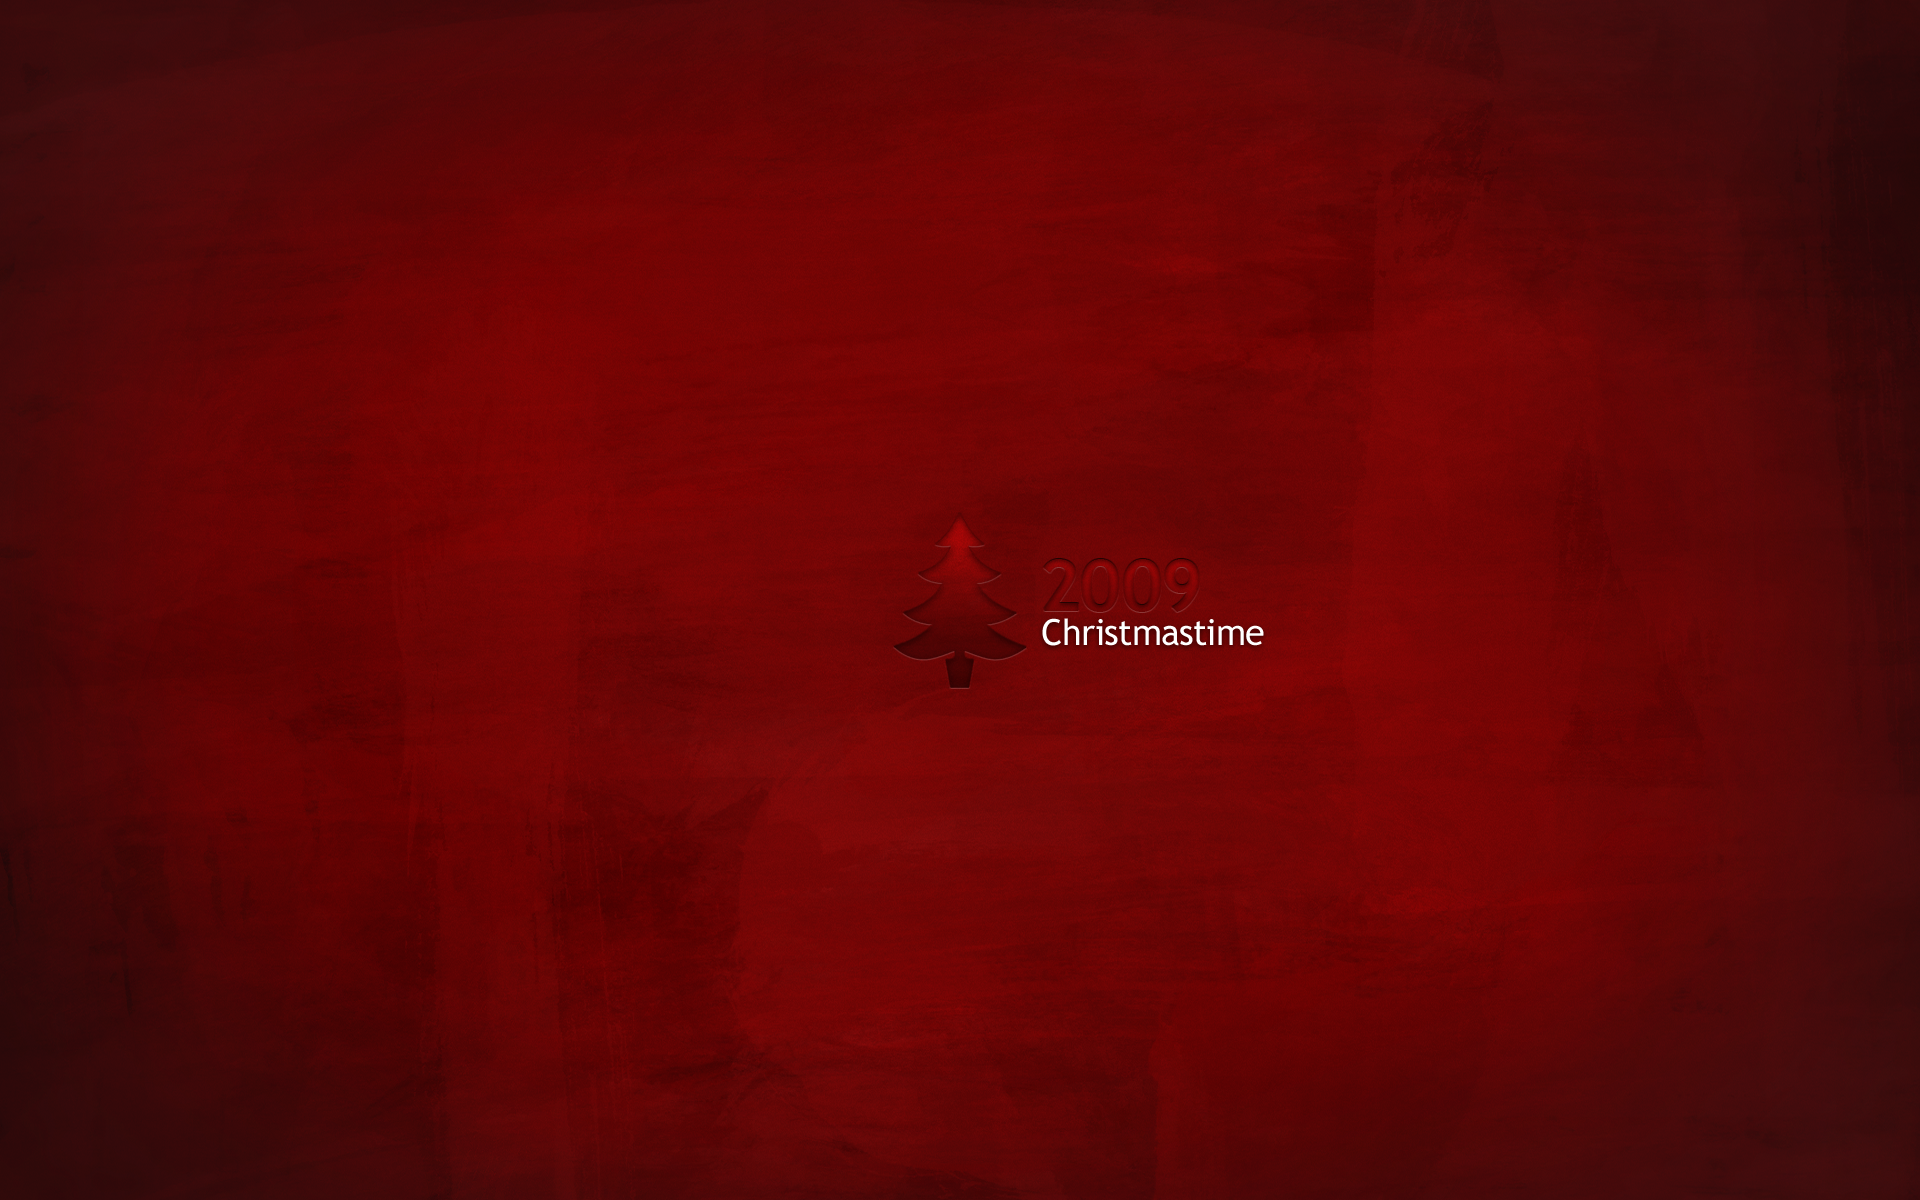 Christmastime_09_red